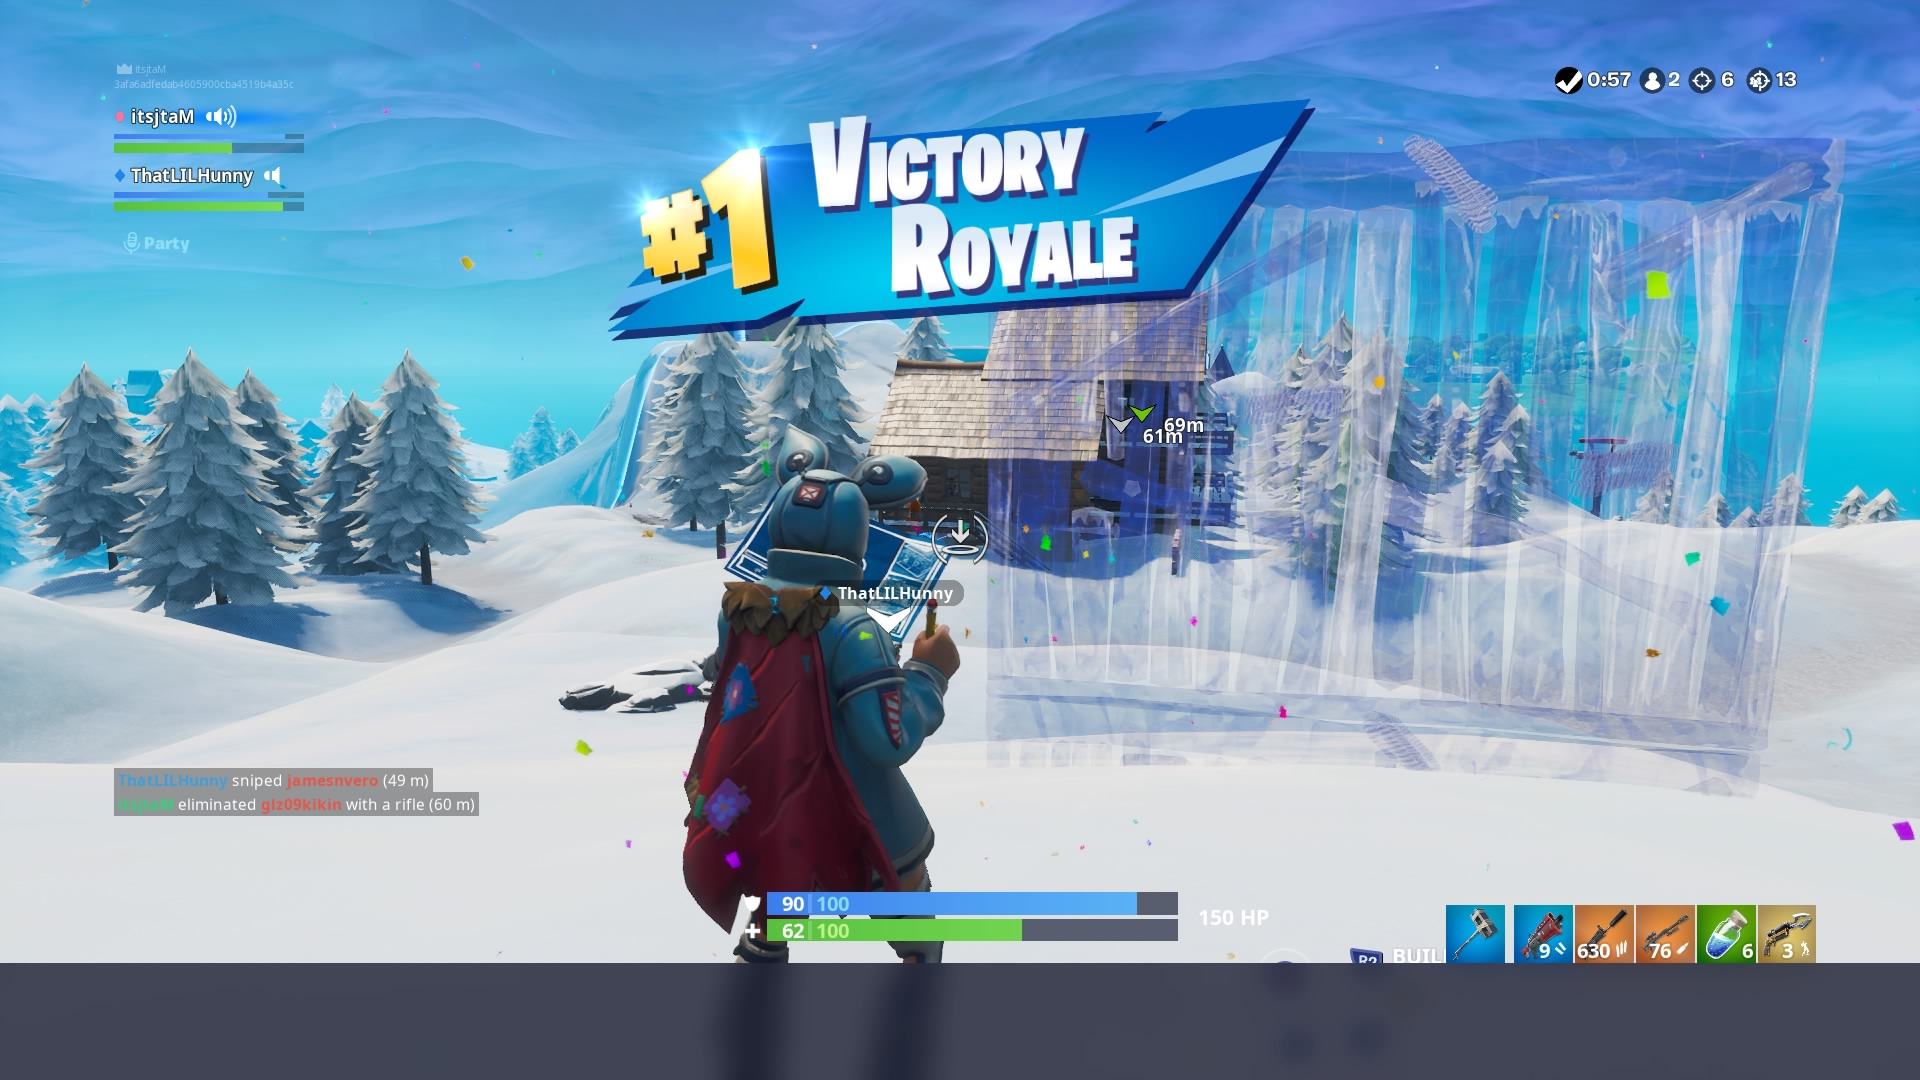 fortnite victory royale wallpaper 69090